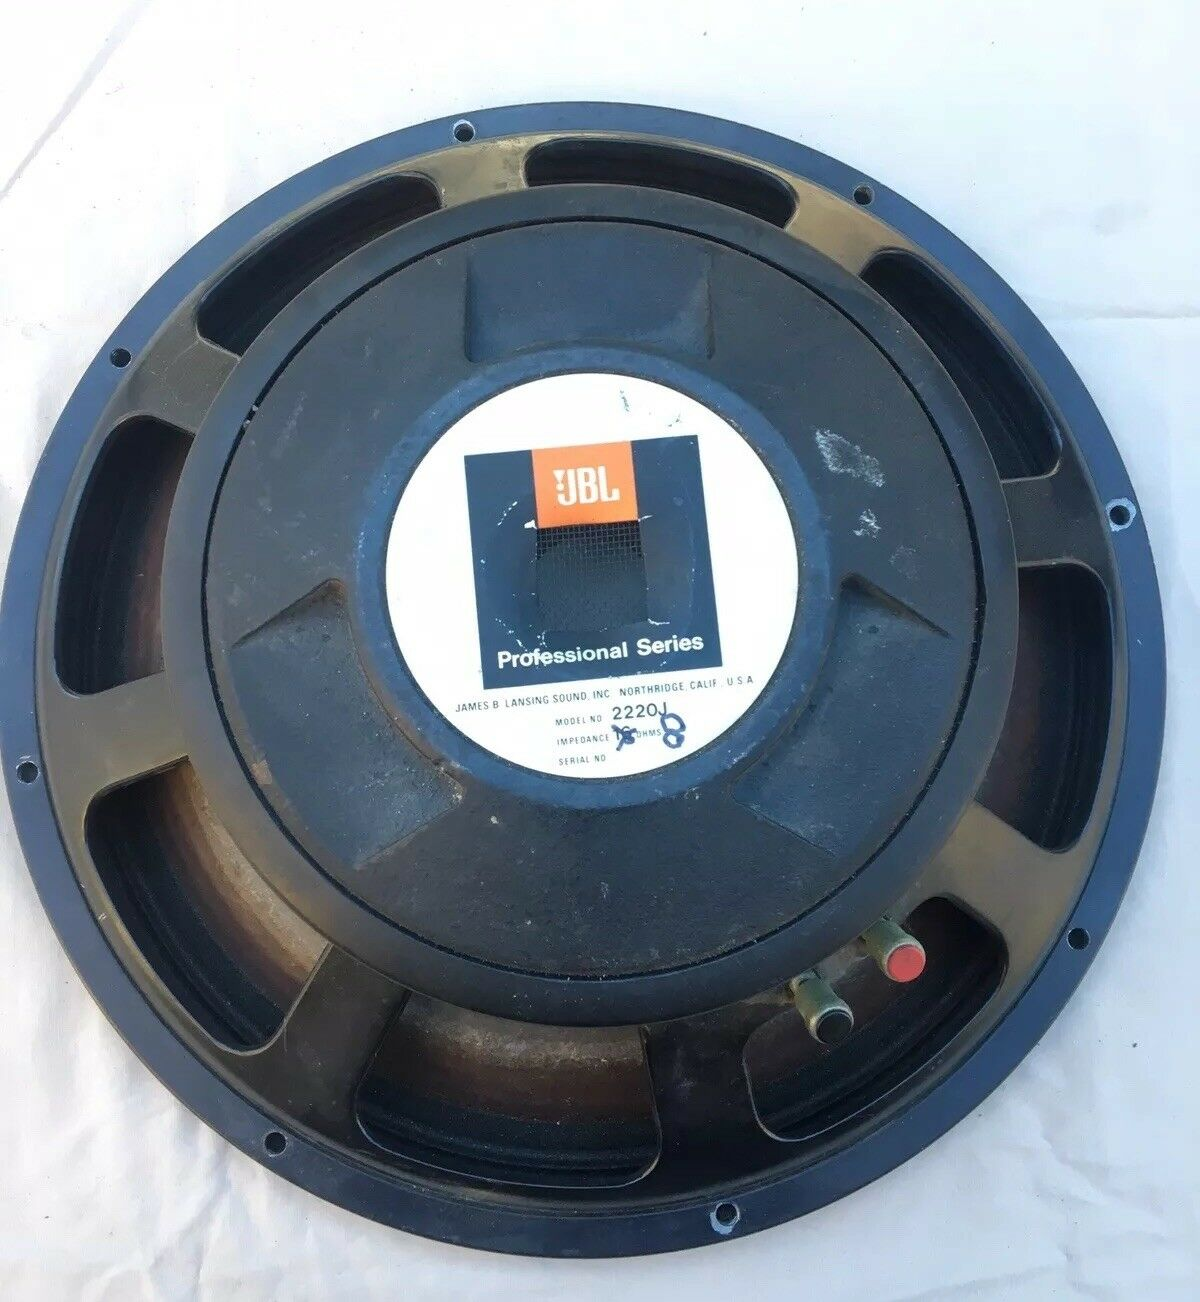 JBL 15  Professionals Series 2225H Type From 2220J Speaker Woofer 8 OHMS (03)